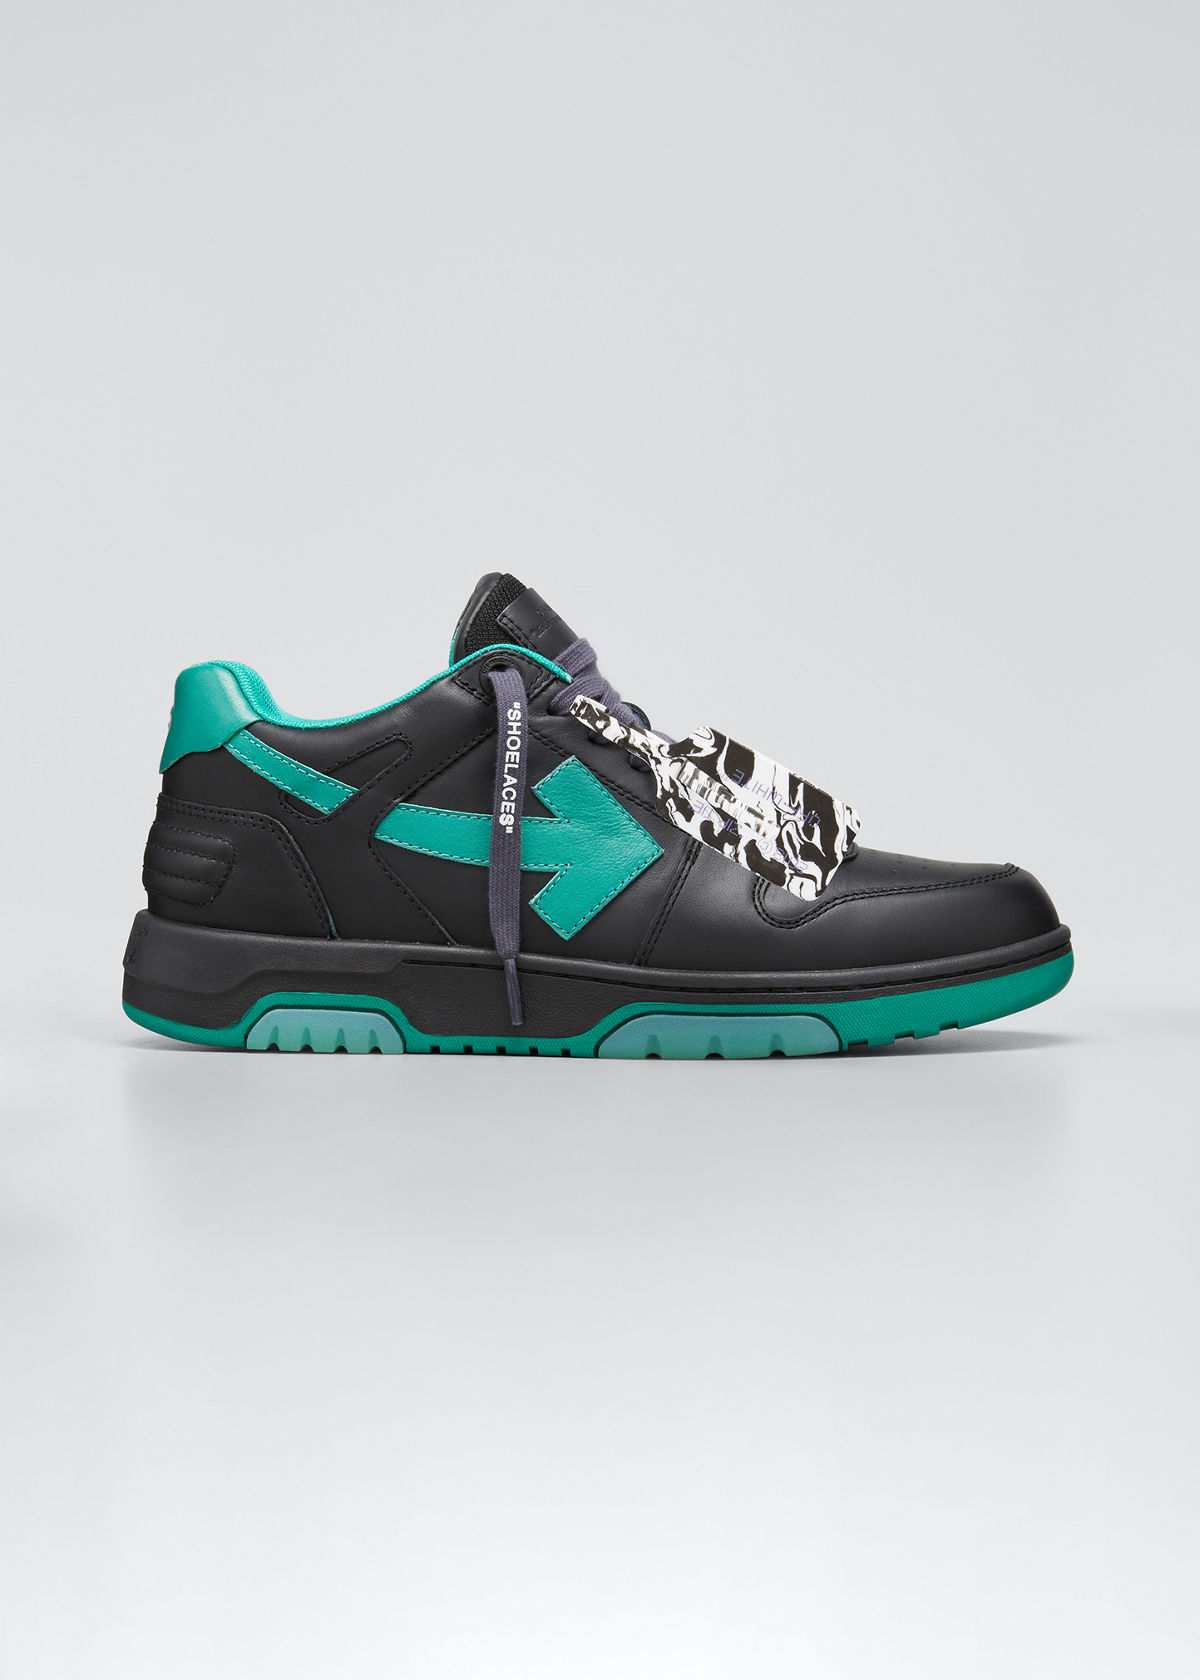 Off-White MEN'S OUT OF OFFICE ARROW LEATHER SNEAKERS